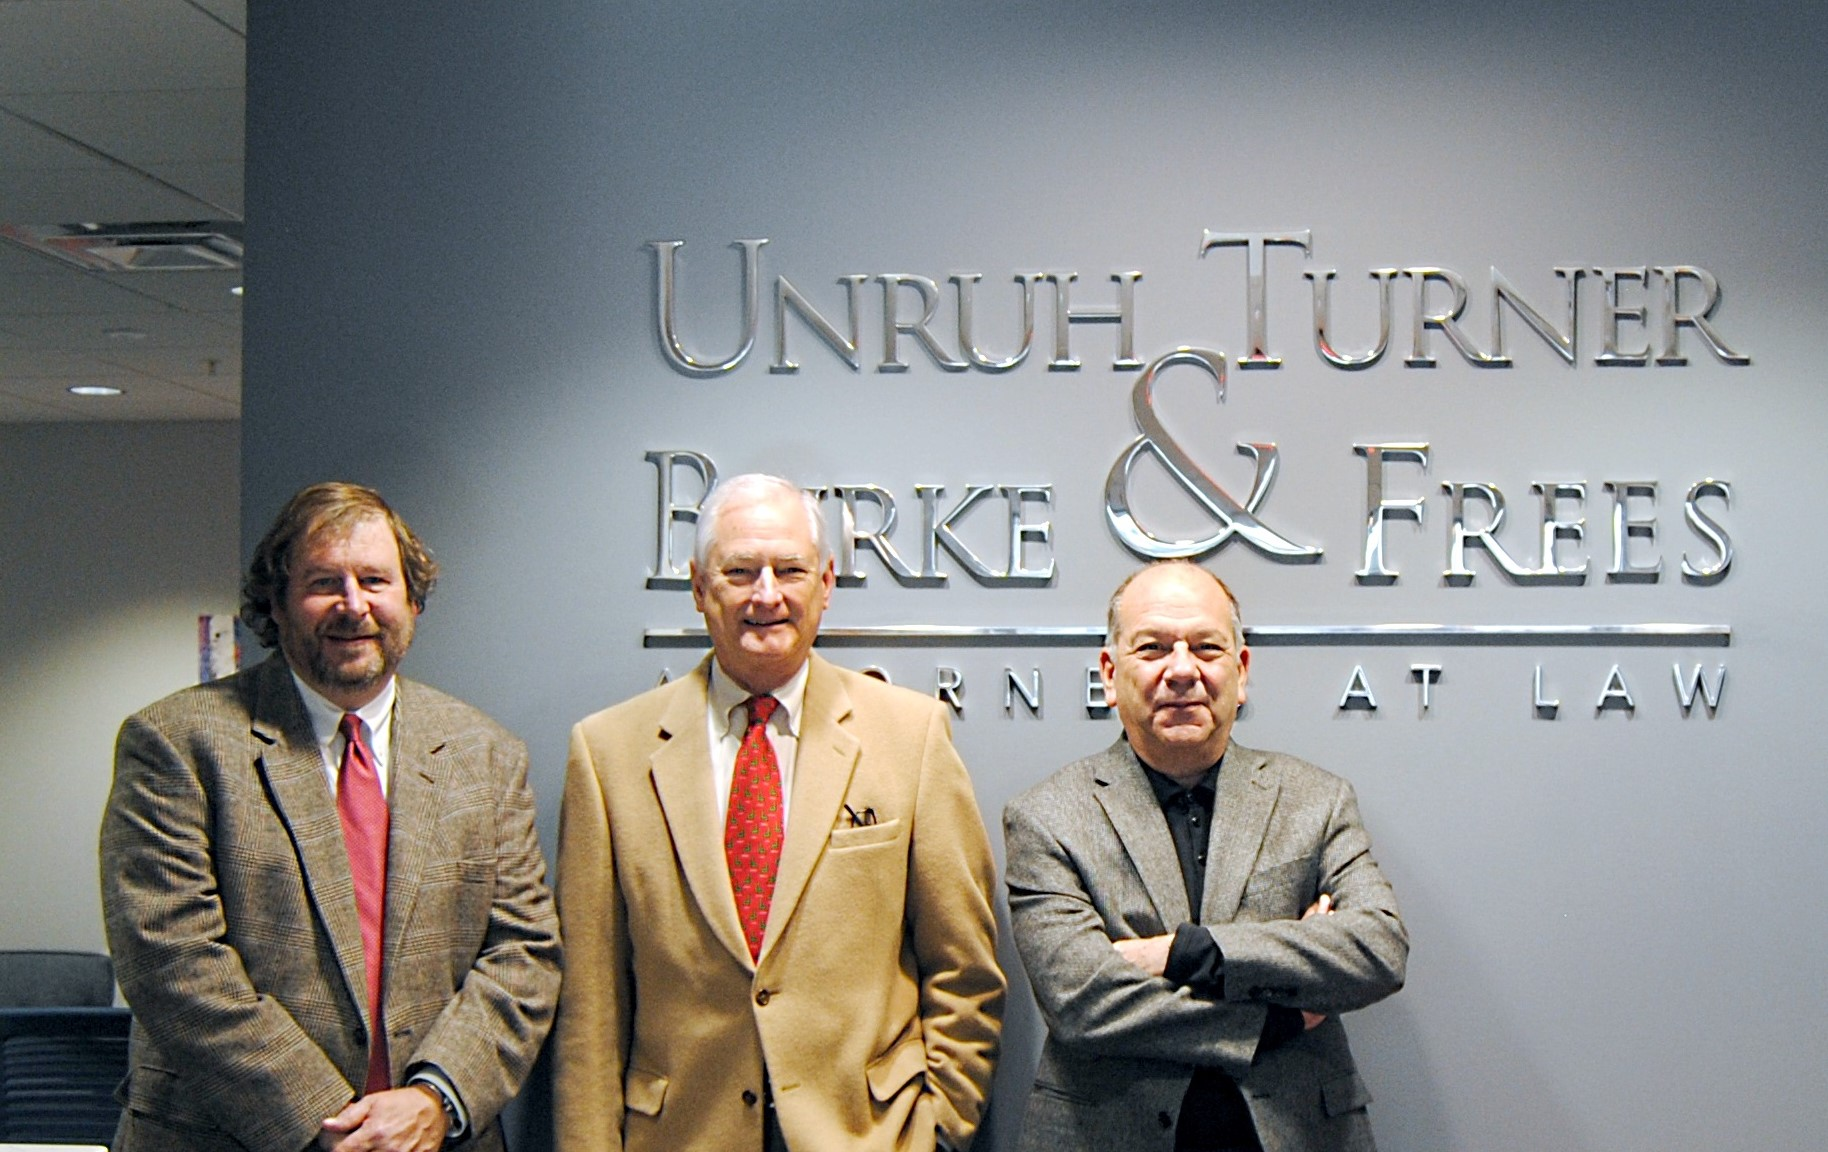 West Chester's Unruh Turner Burke & Frees Celebrates Silver Anniversary in Style